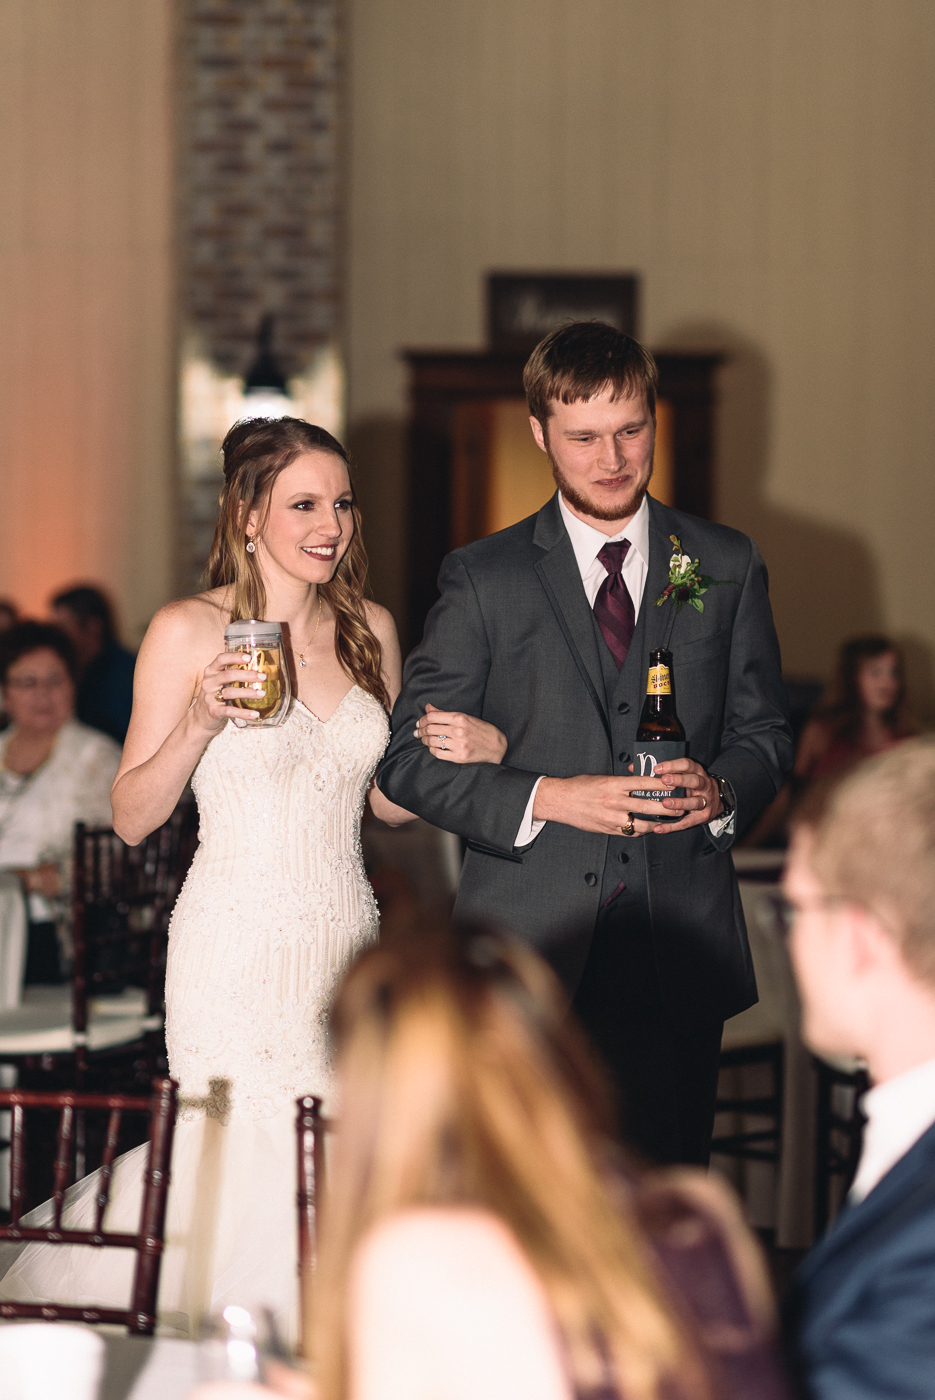 wedding reception speeches shiner bock beer wine sippy cup